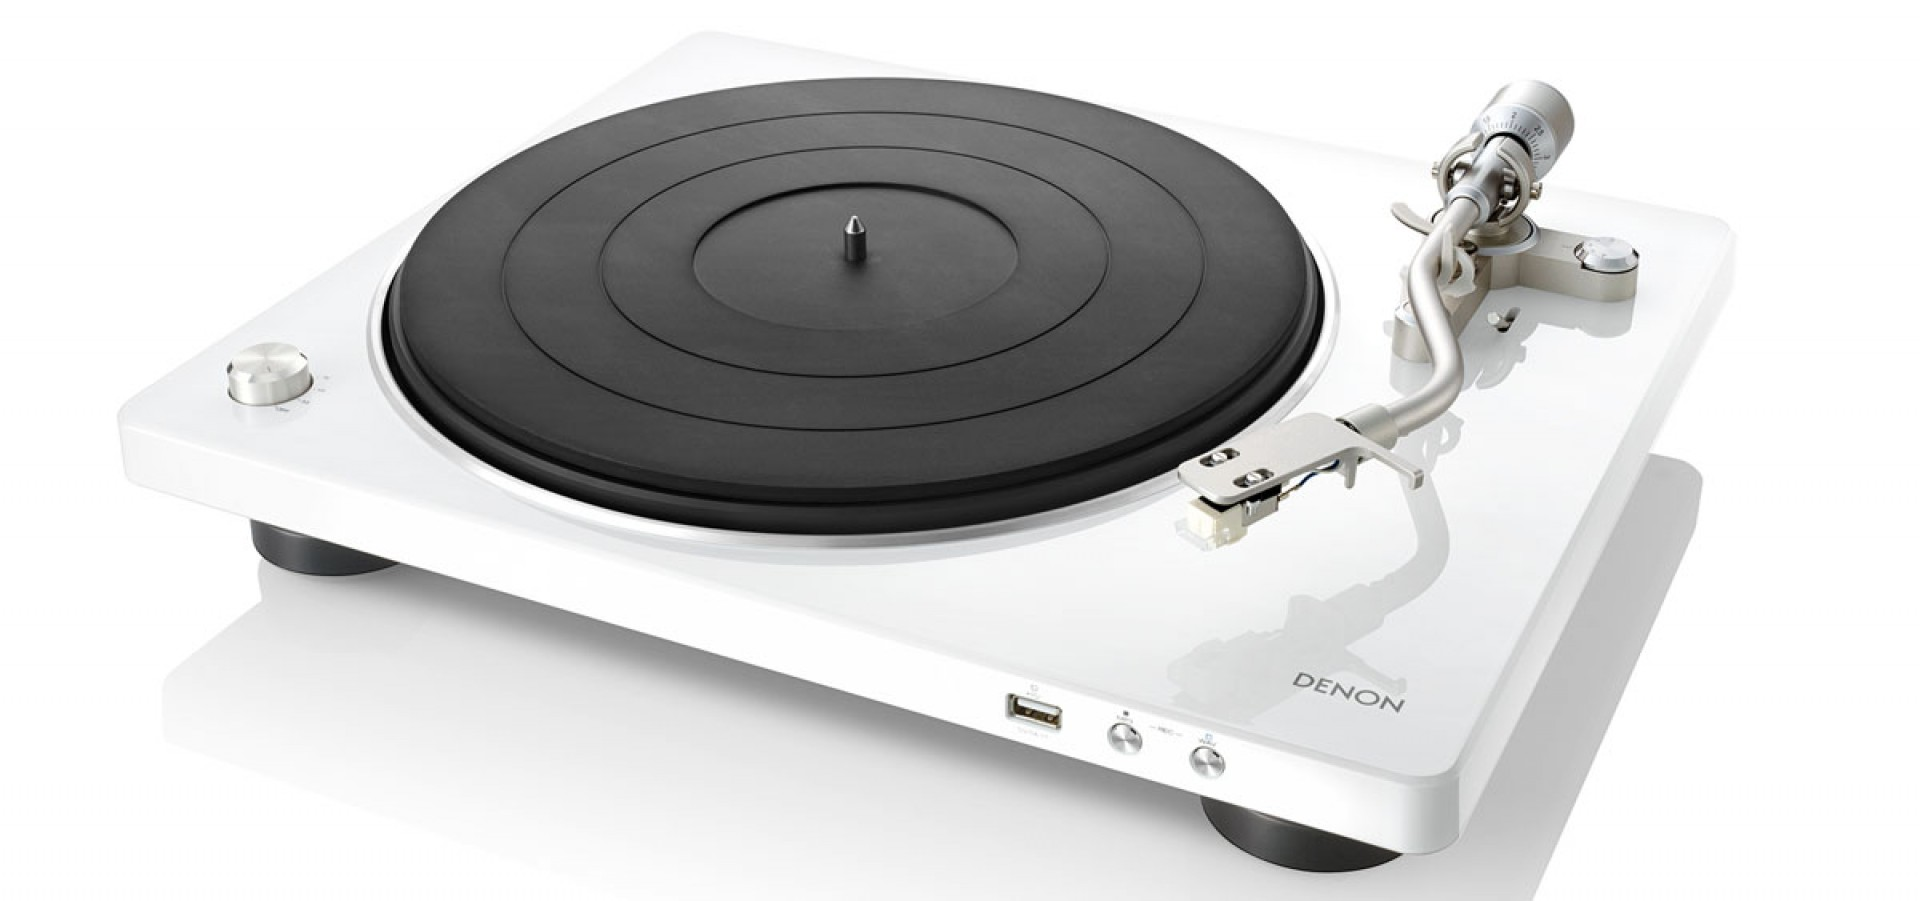 DENON DP-450 White Turntable w/ USB